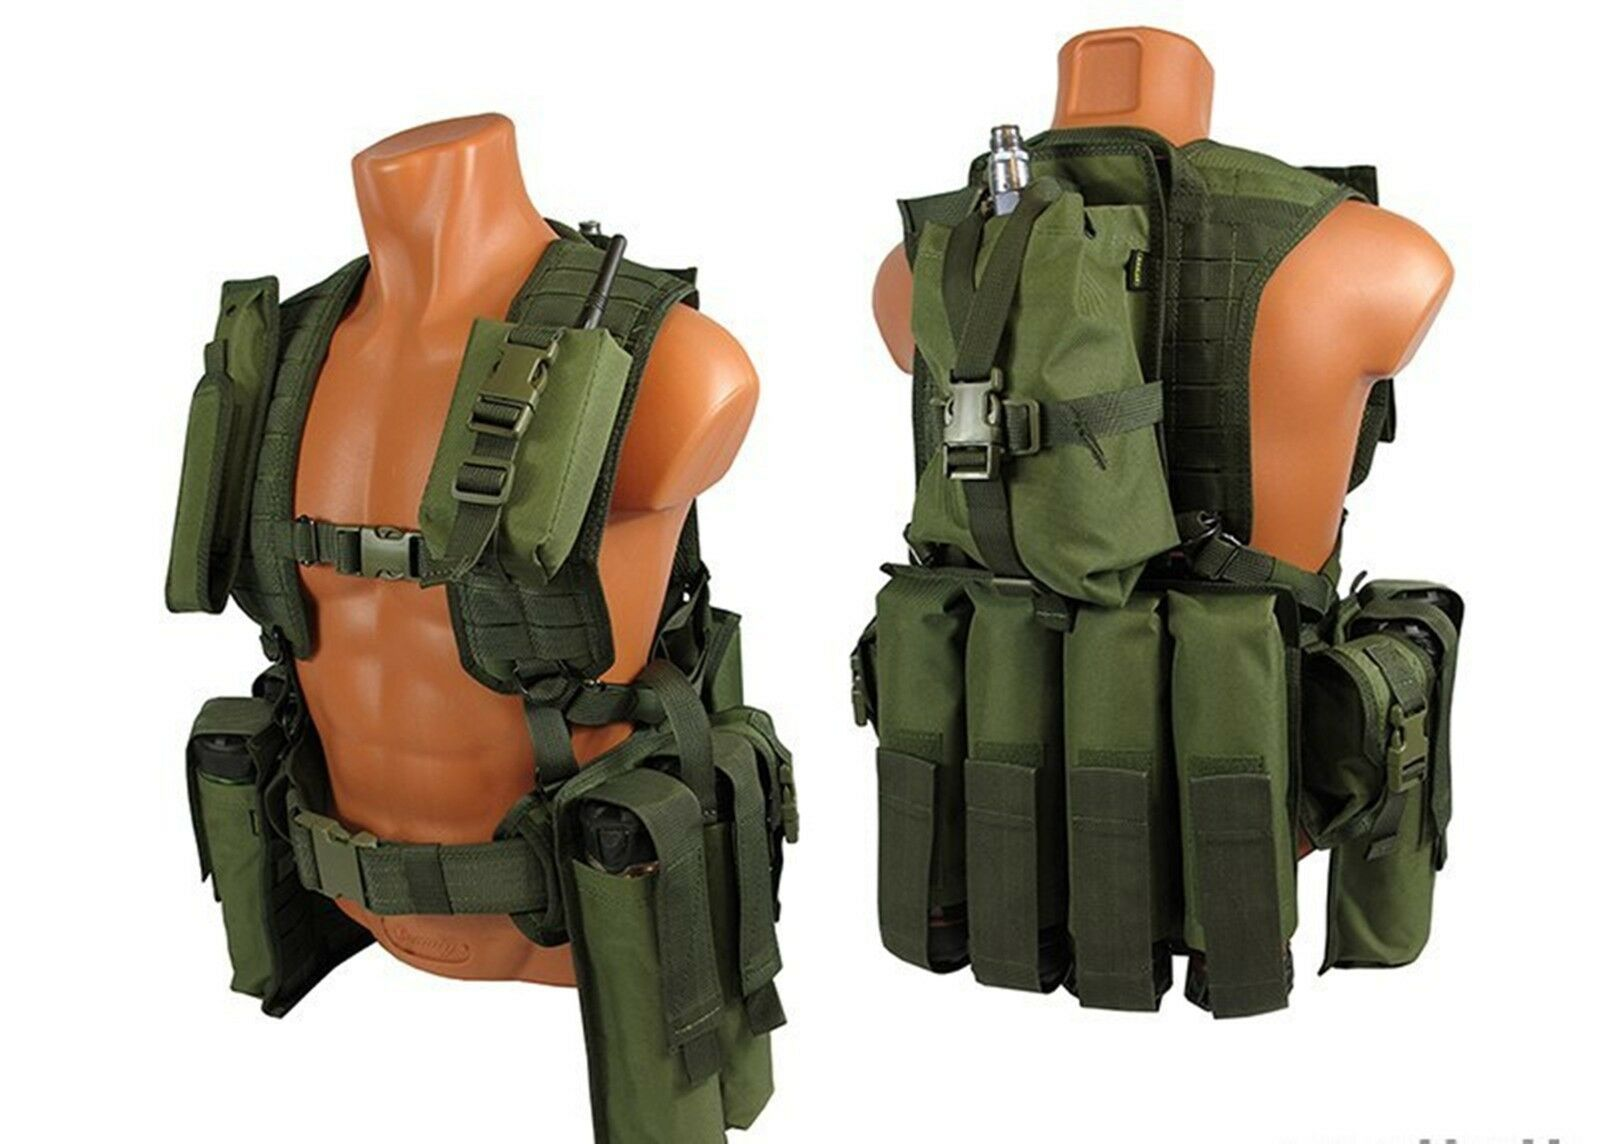 verde OD MOLLE Pals Paintball Airsoft pecho plataforma modular Chaleco Oliva Kit № 35 Tanque